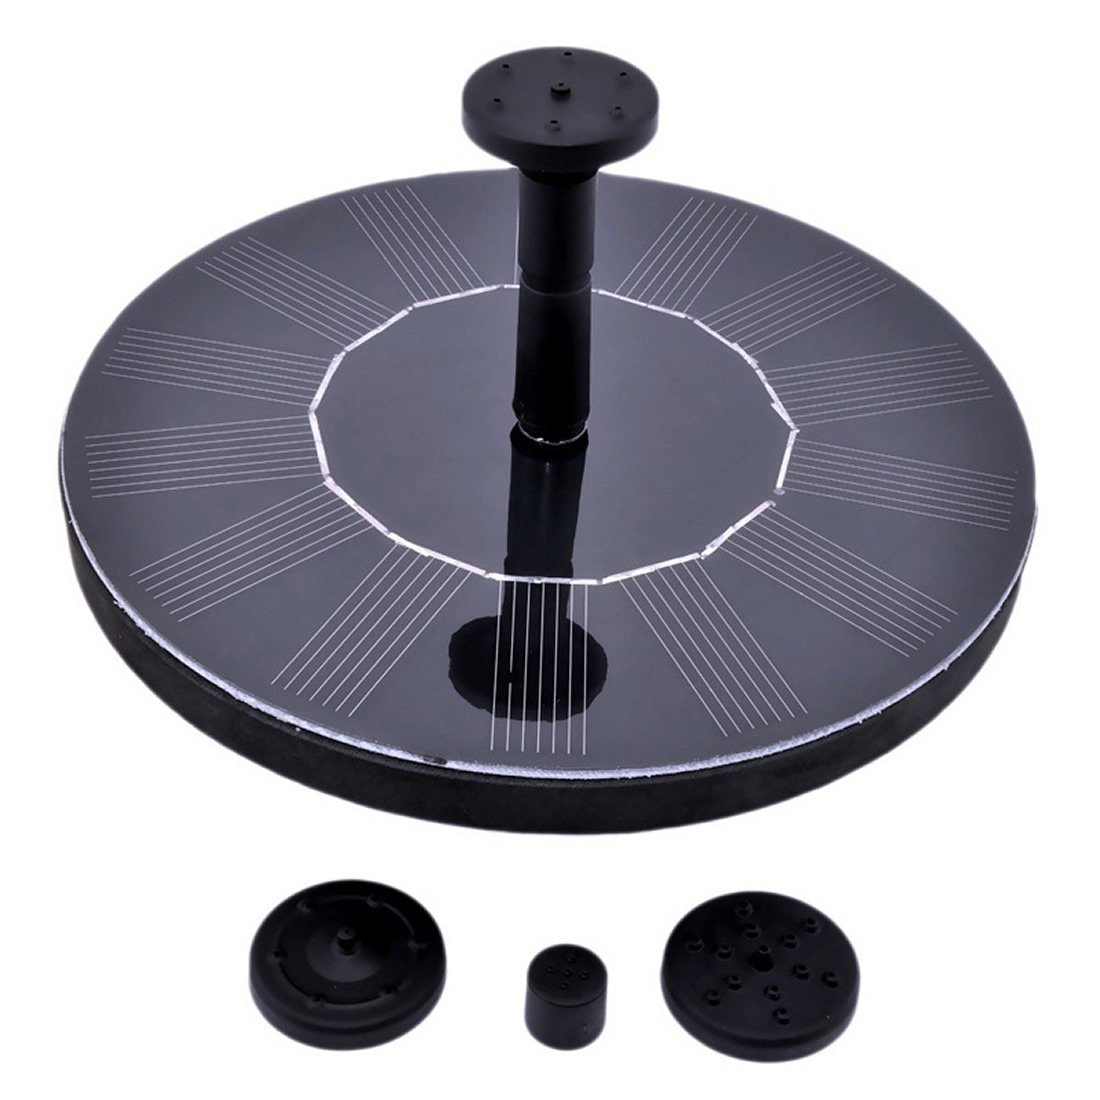 Solar Fountain Pump, 1.4W Free Standing Water Fountain Pump Kit with 4 Different Spray Heads for Bird Bath, Fish Tank, Small Pond and Garden